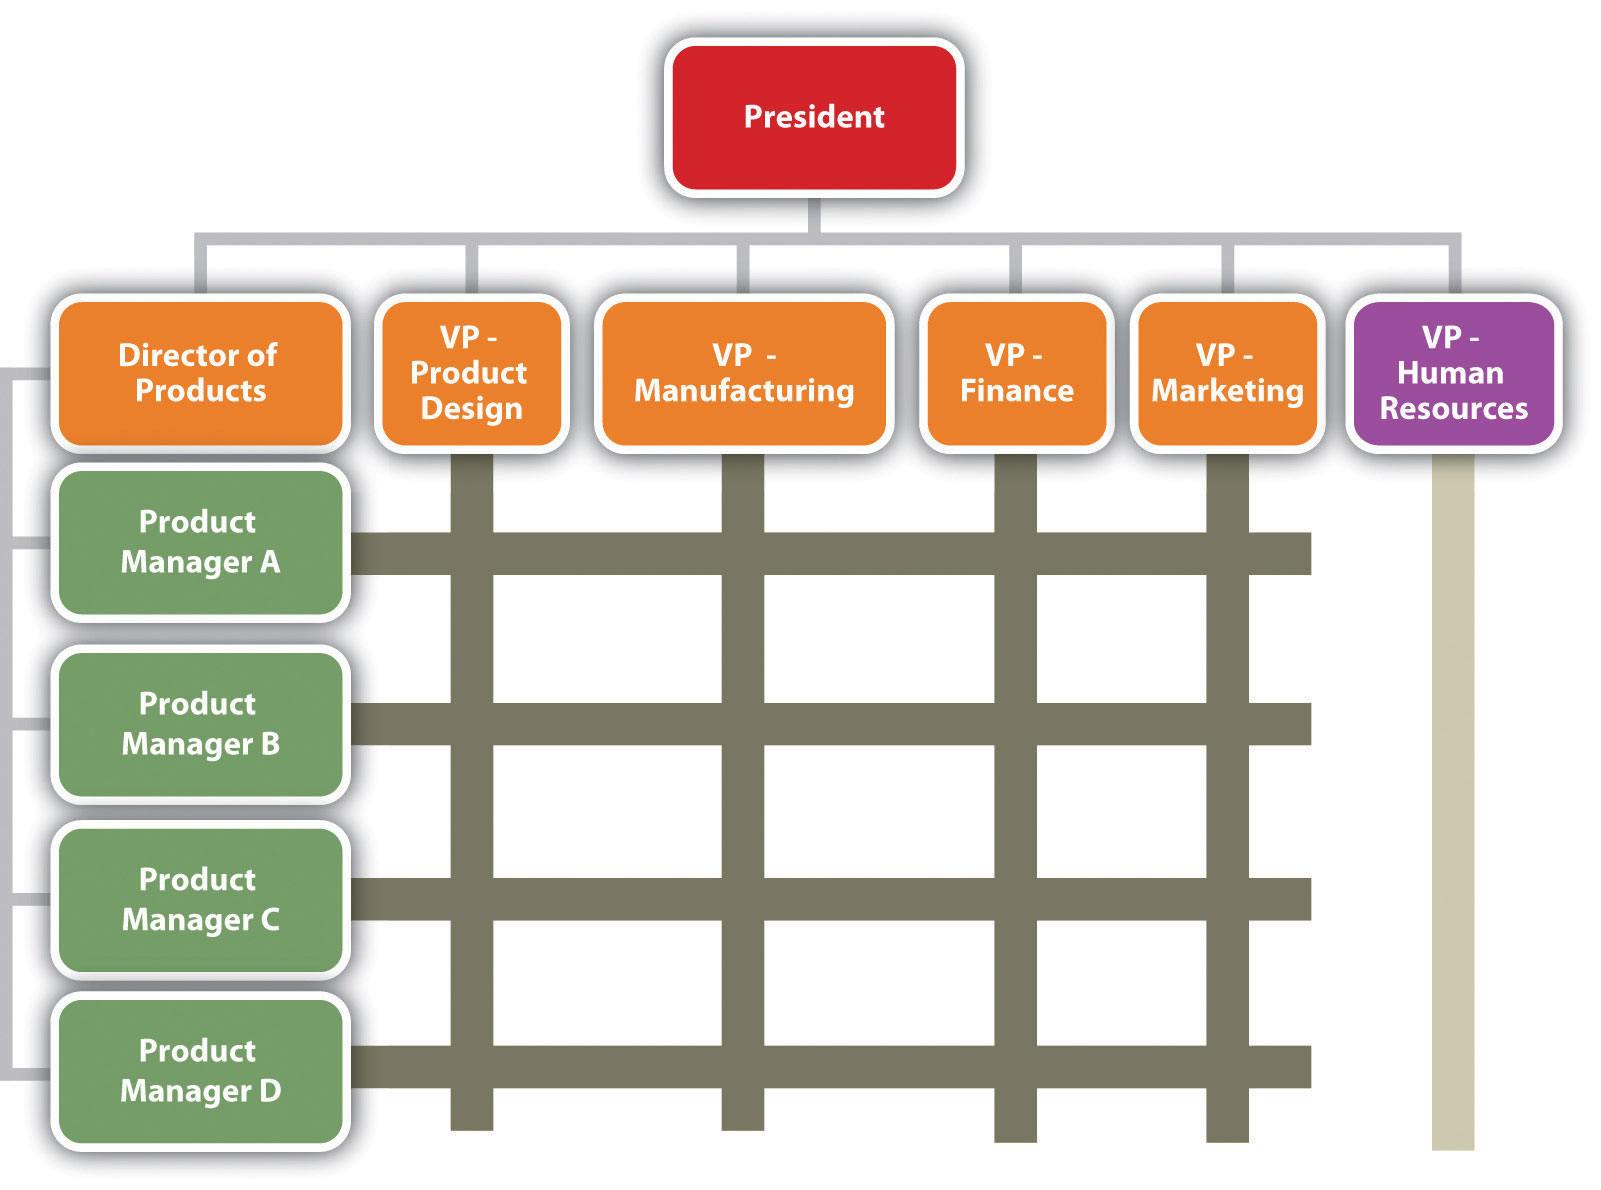 5 organizational structure examples | which to use?